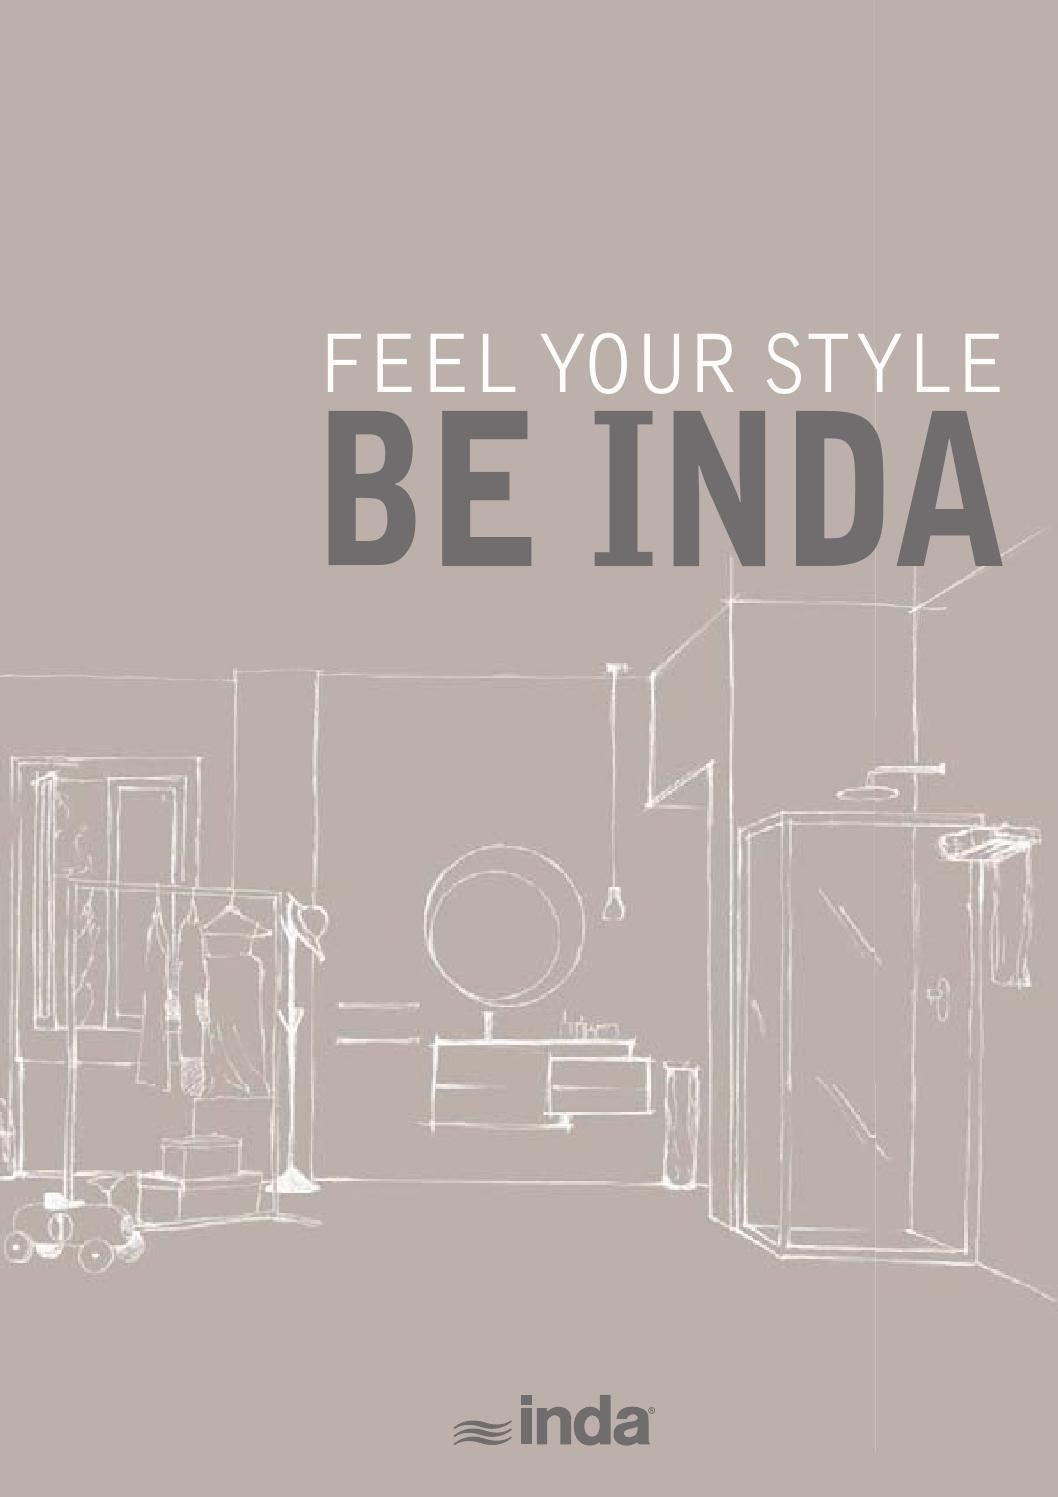 Aufsatzwaschbecken Inda Feel Your Style Be Inda 2015 By Thehouseofmouse Srl Issuu